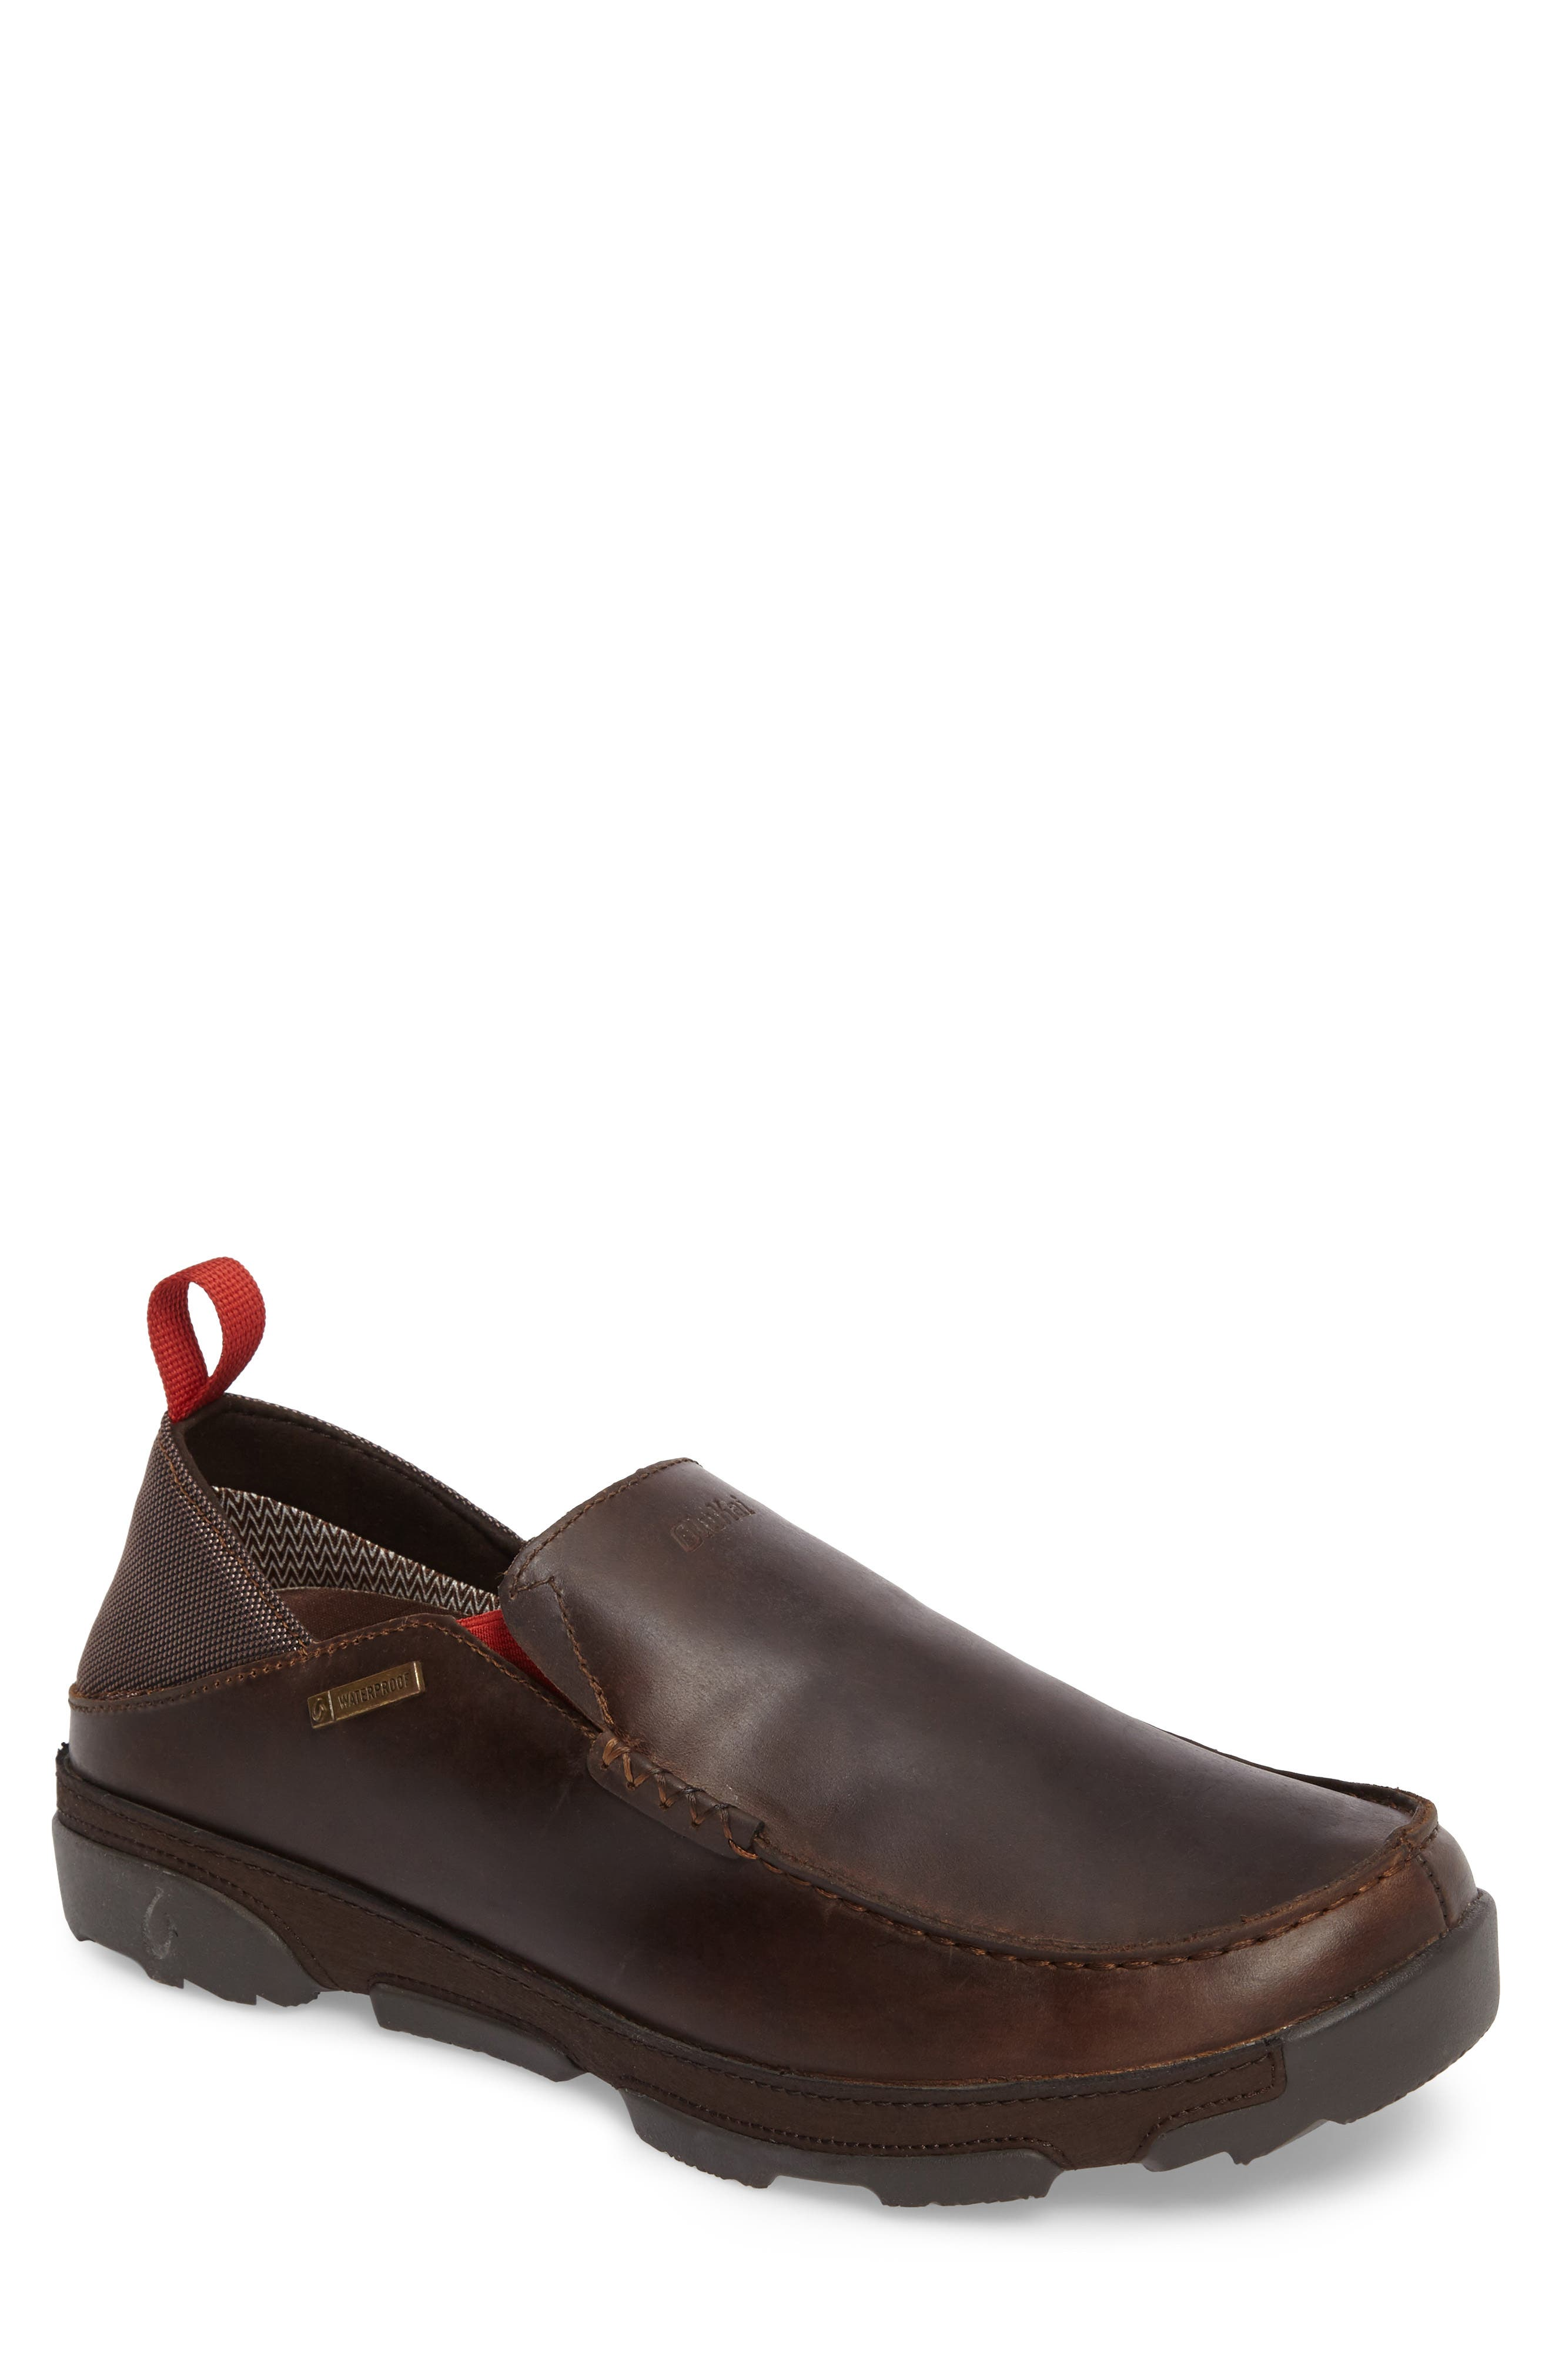 Na'I Collapsible Waterproof Slip-On,                             Main thumbnail 1, color,                             CAROB/ DARK WOOD LEATHER